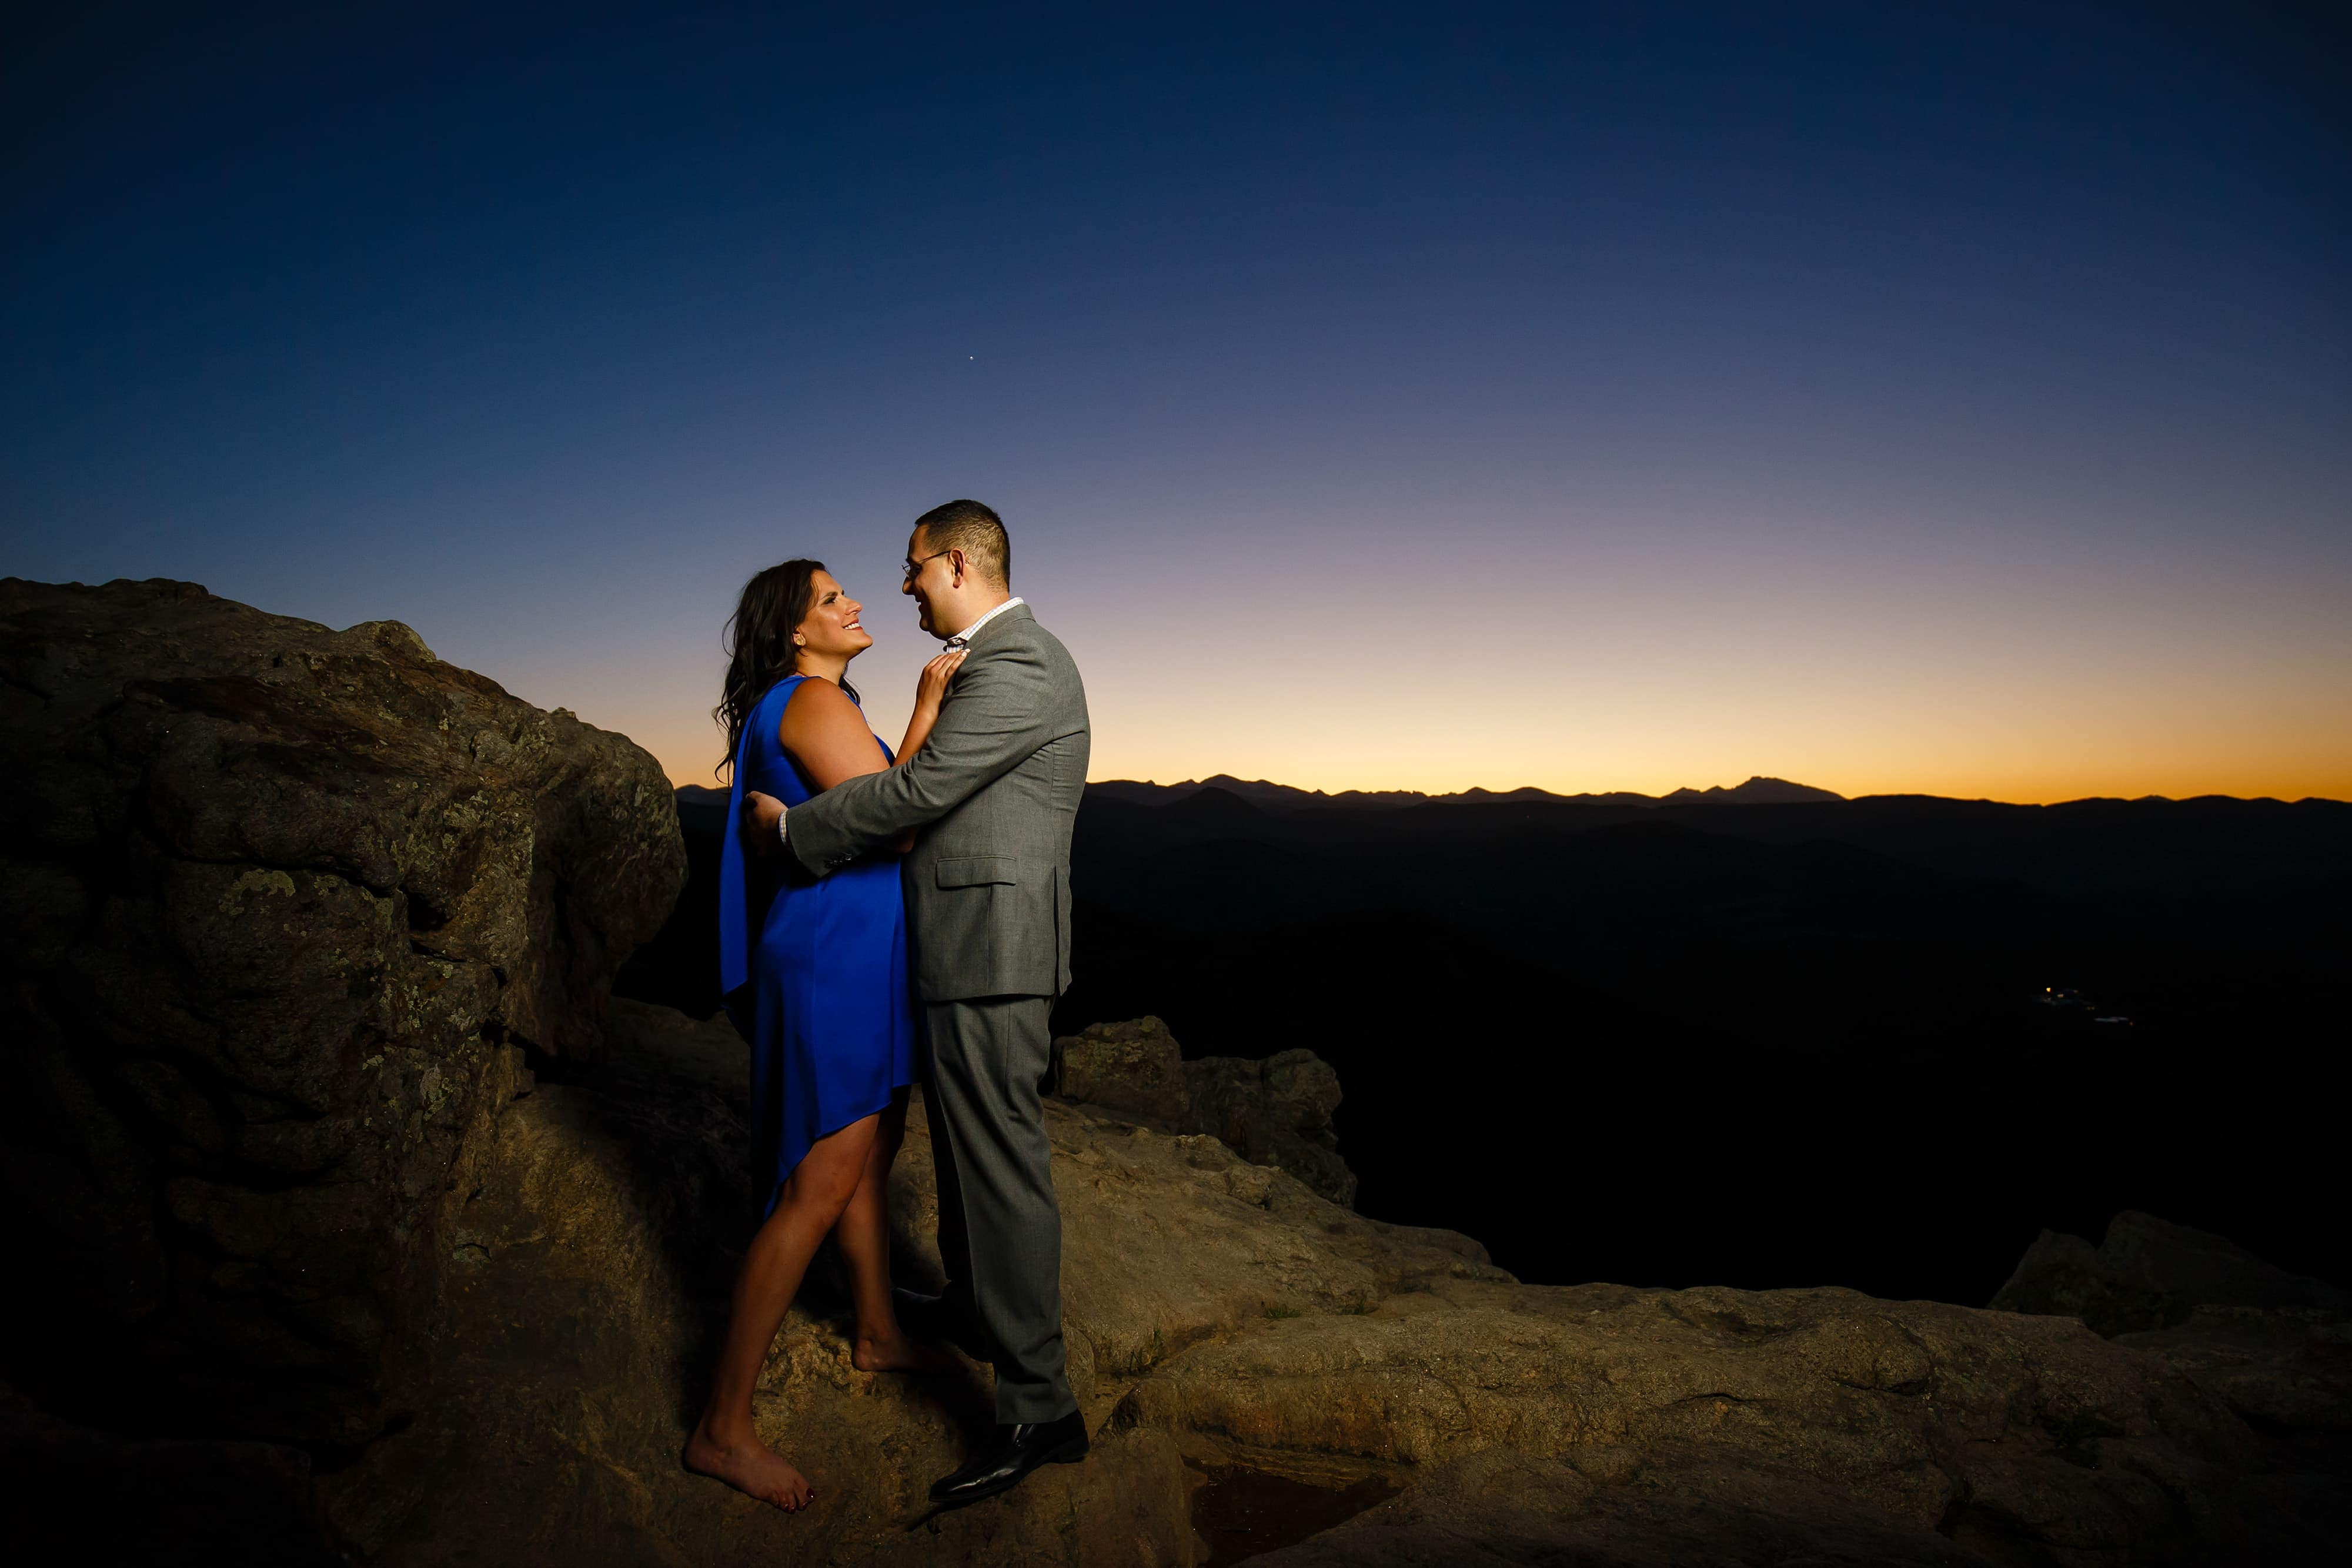 Dimitra and George share a moment while watching the sunset at Lost Gulch overlook during their engagement photos in Boulder Colorado